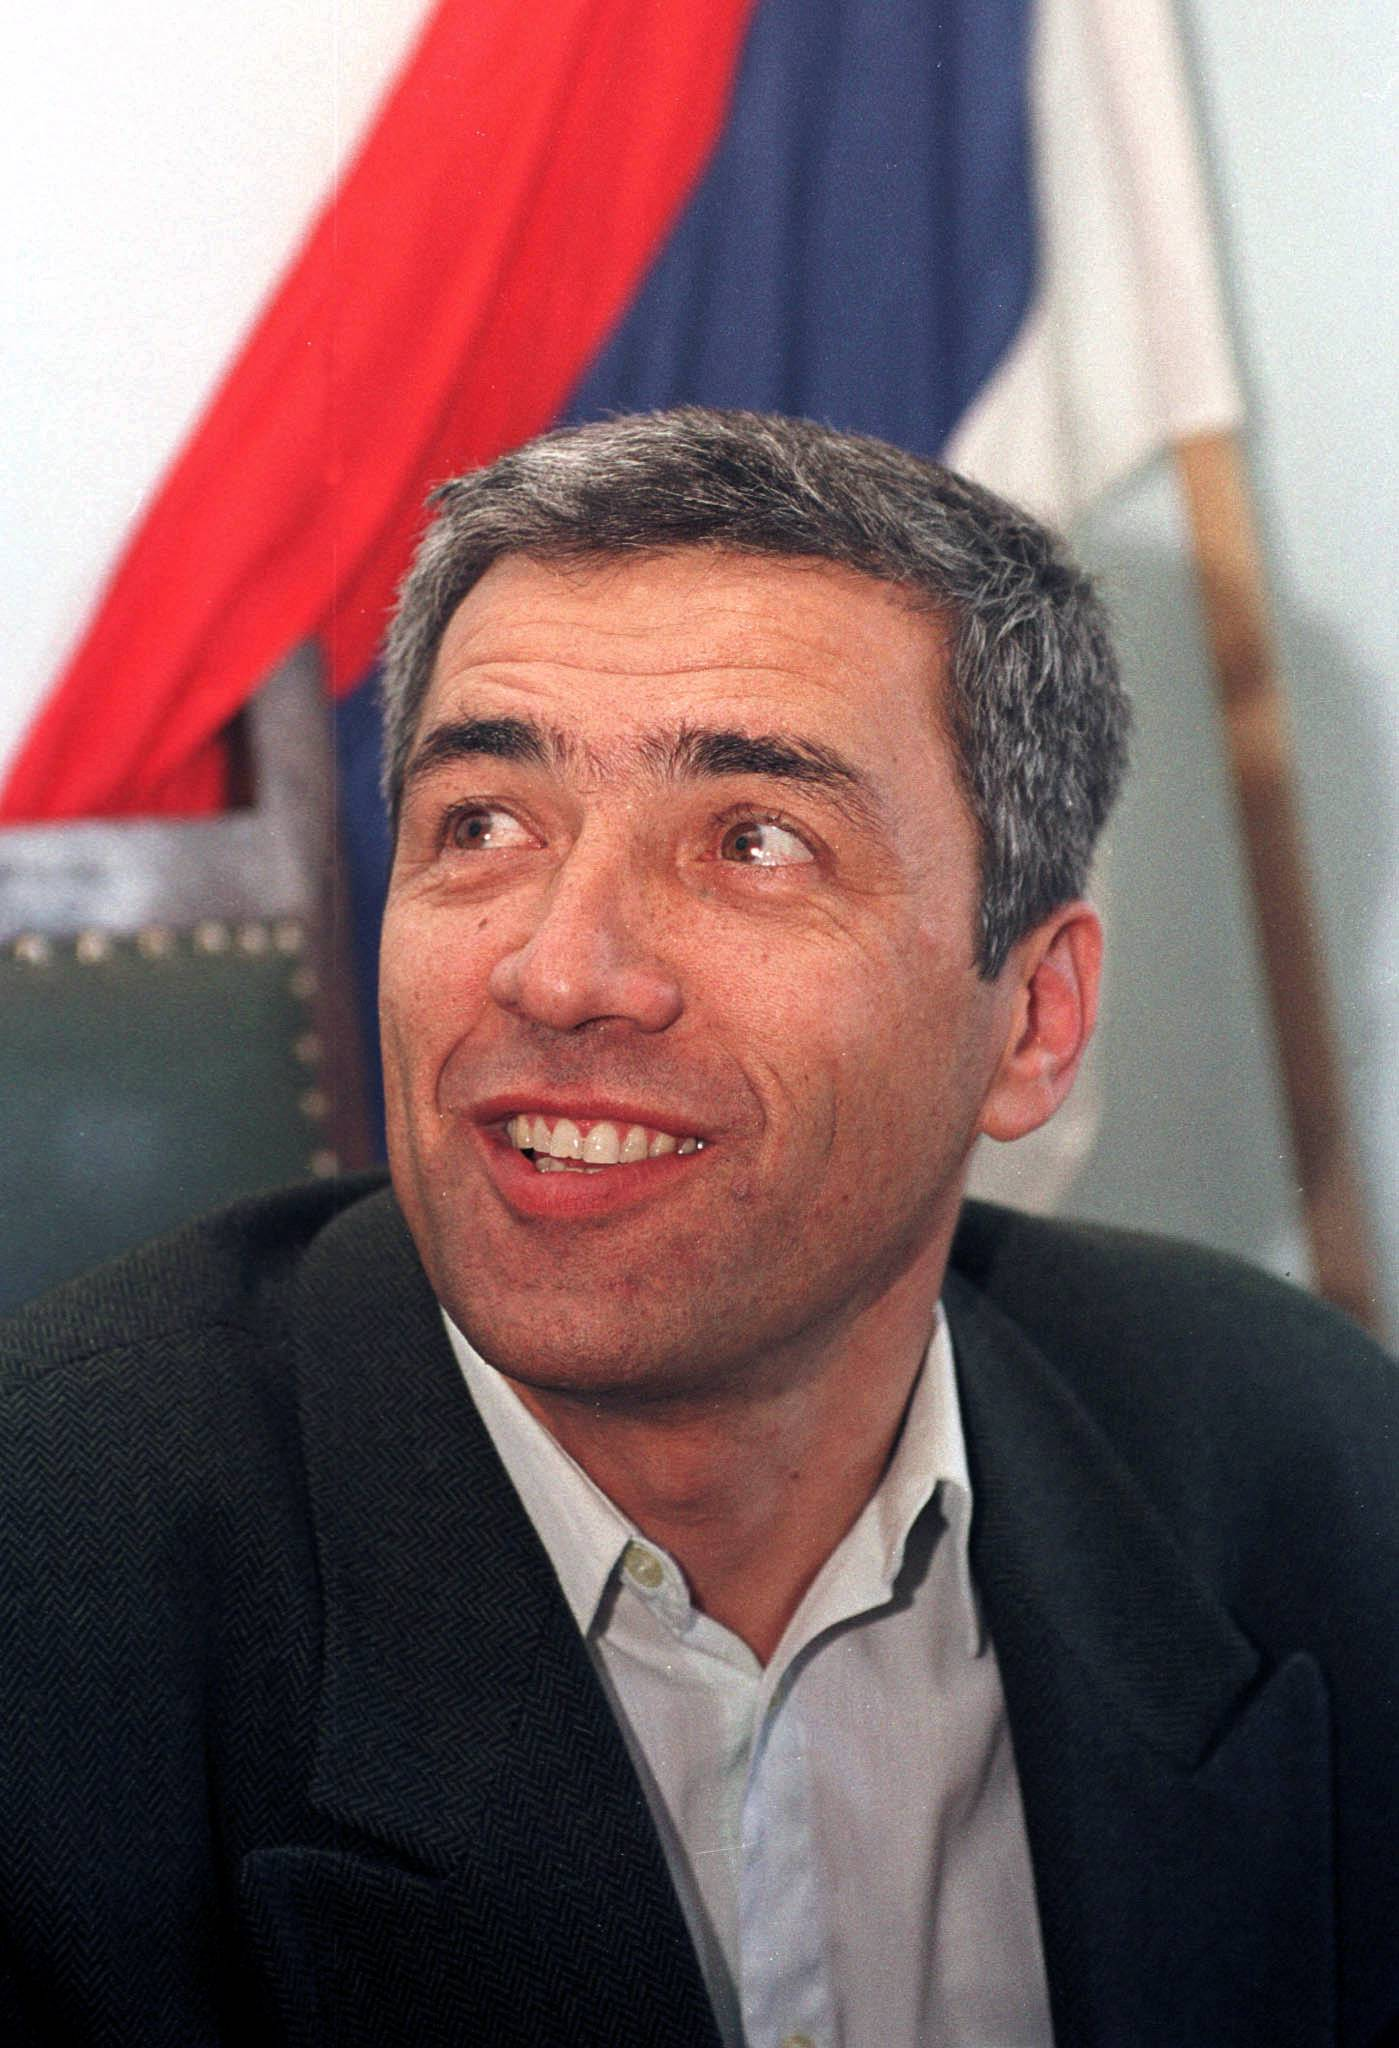 FILE PHOTO - The leader of the Serb community Oliver Ivanovic smiles as he speaks to the press in his office in Mitrovica